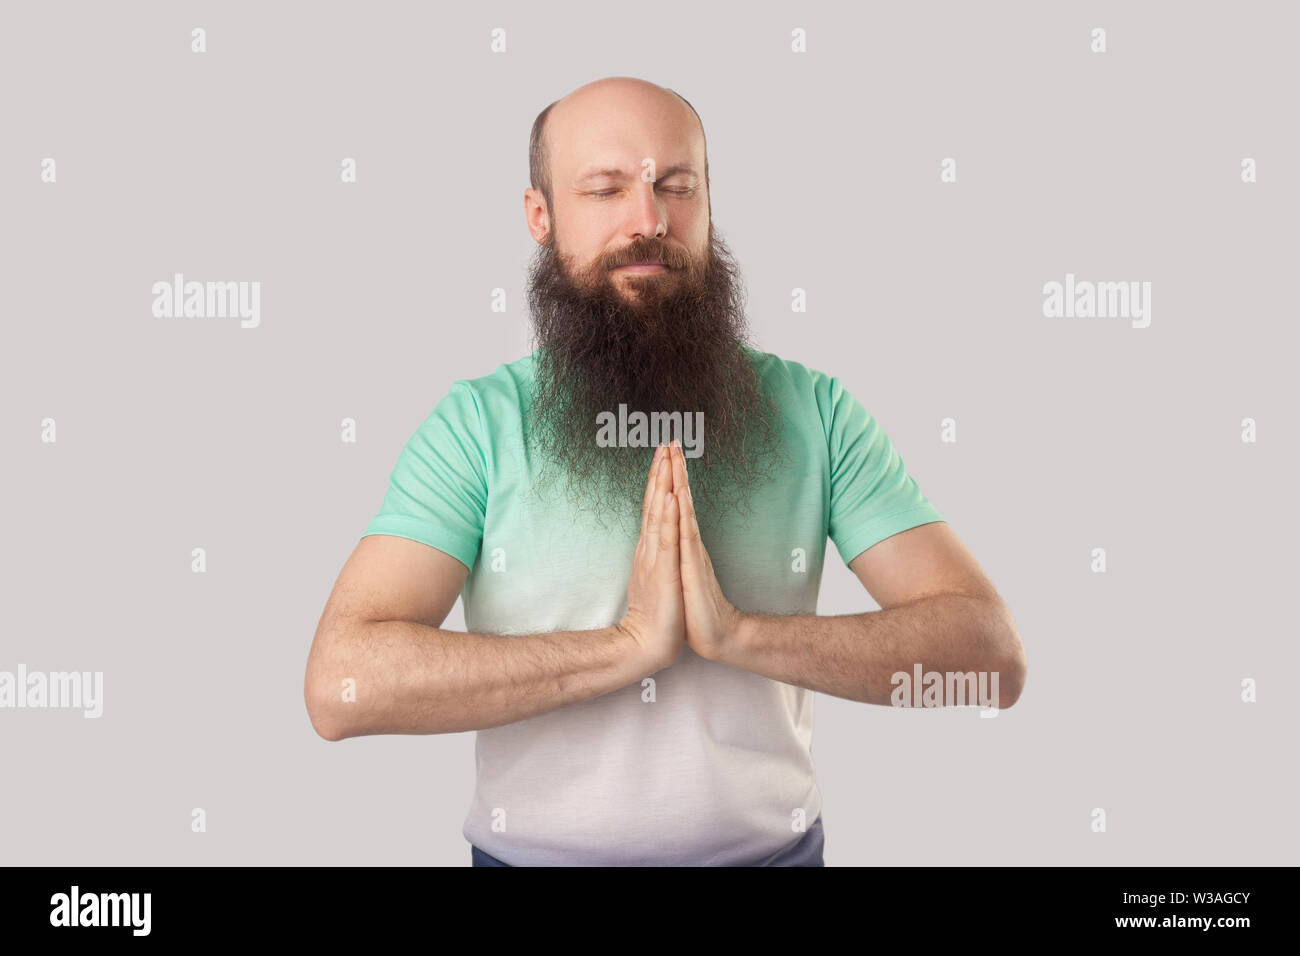 Portrait of calm serious middle aged bald man with long beard in light green t-shirt standing with closed eyes, palm hand and doing yoga meditation. i Stock Photo